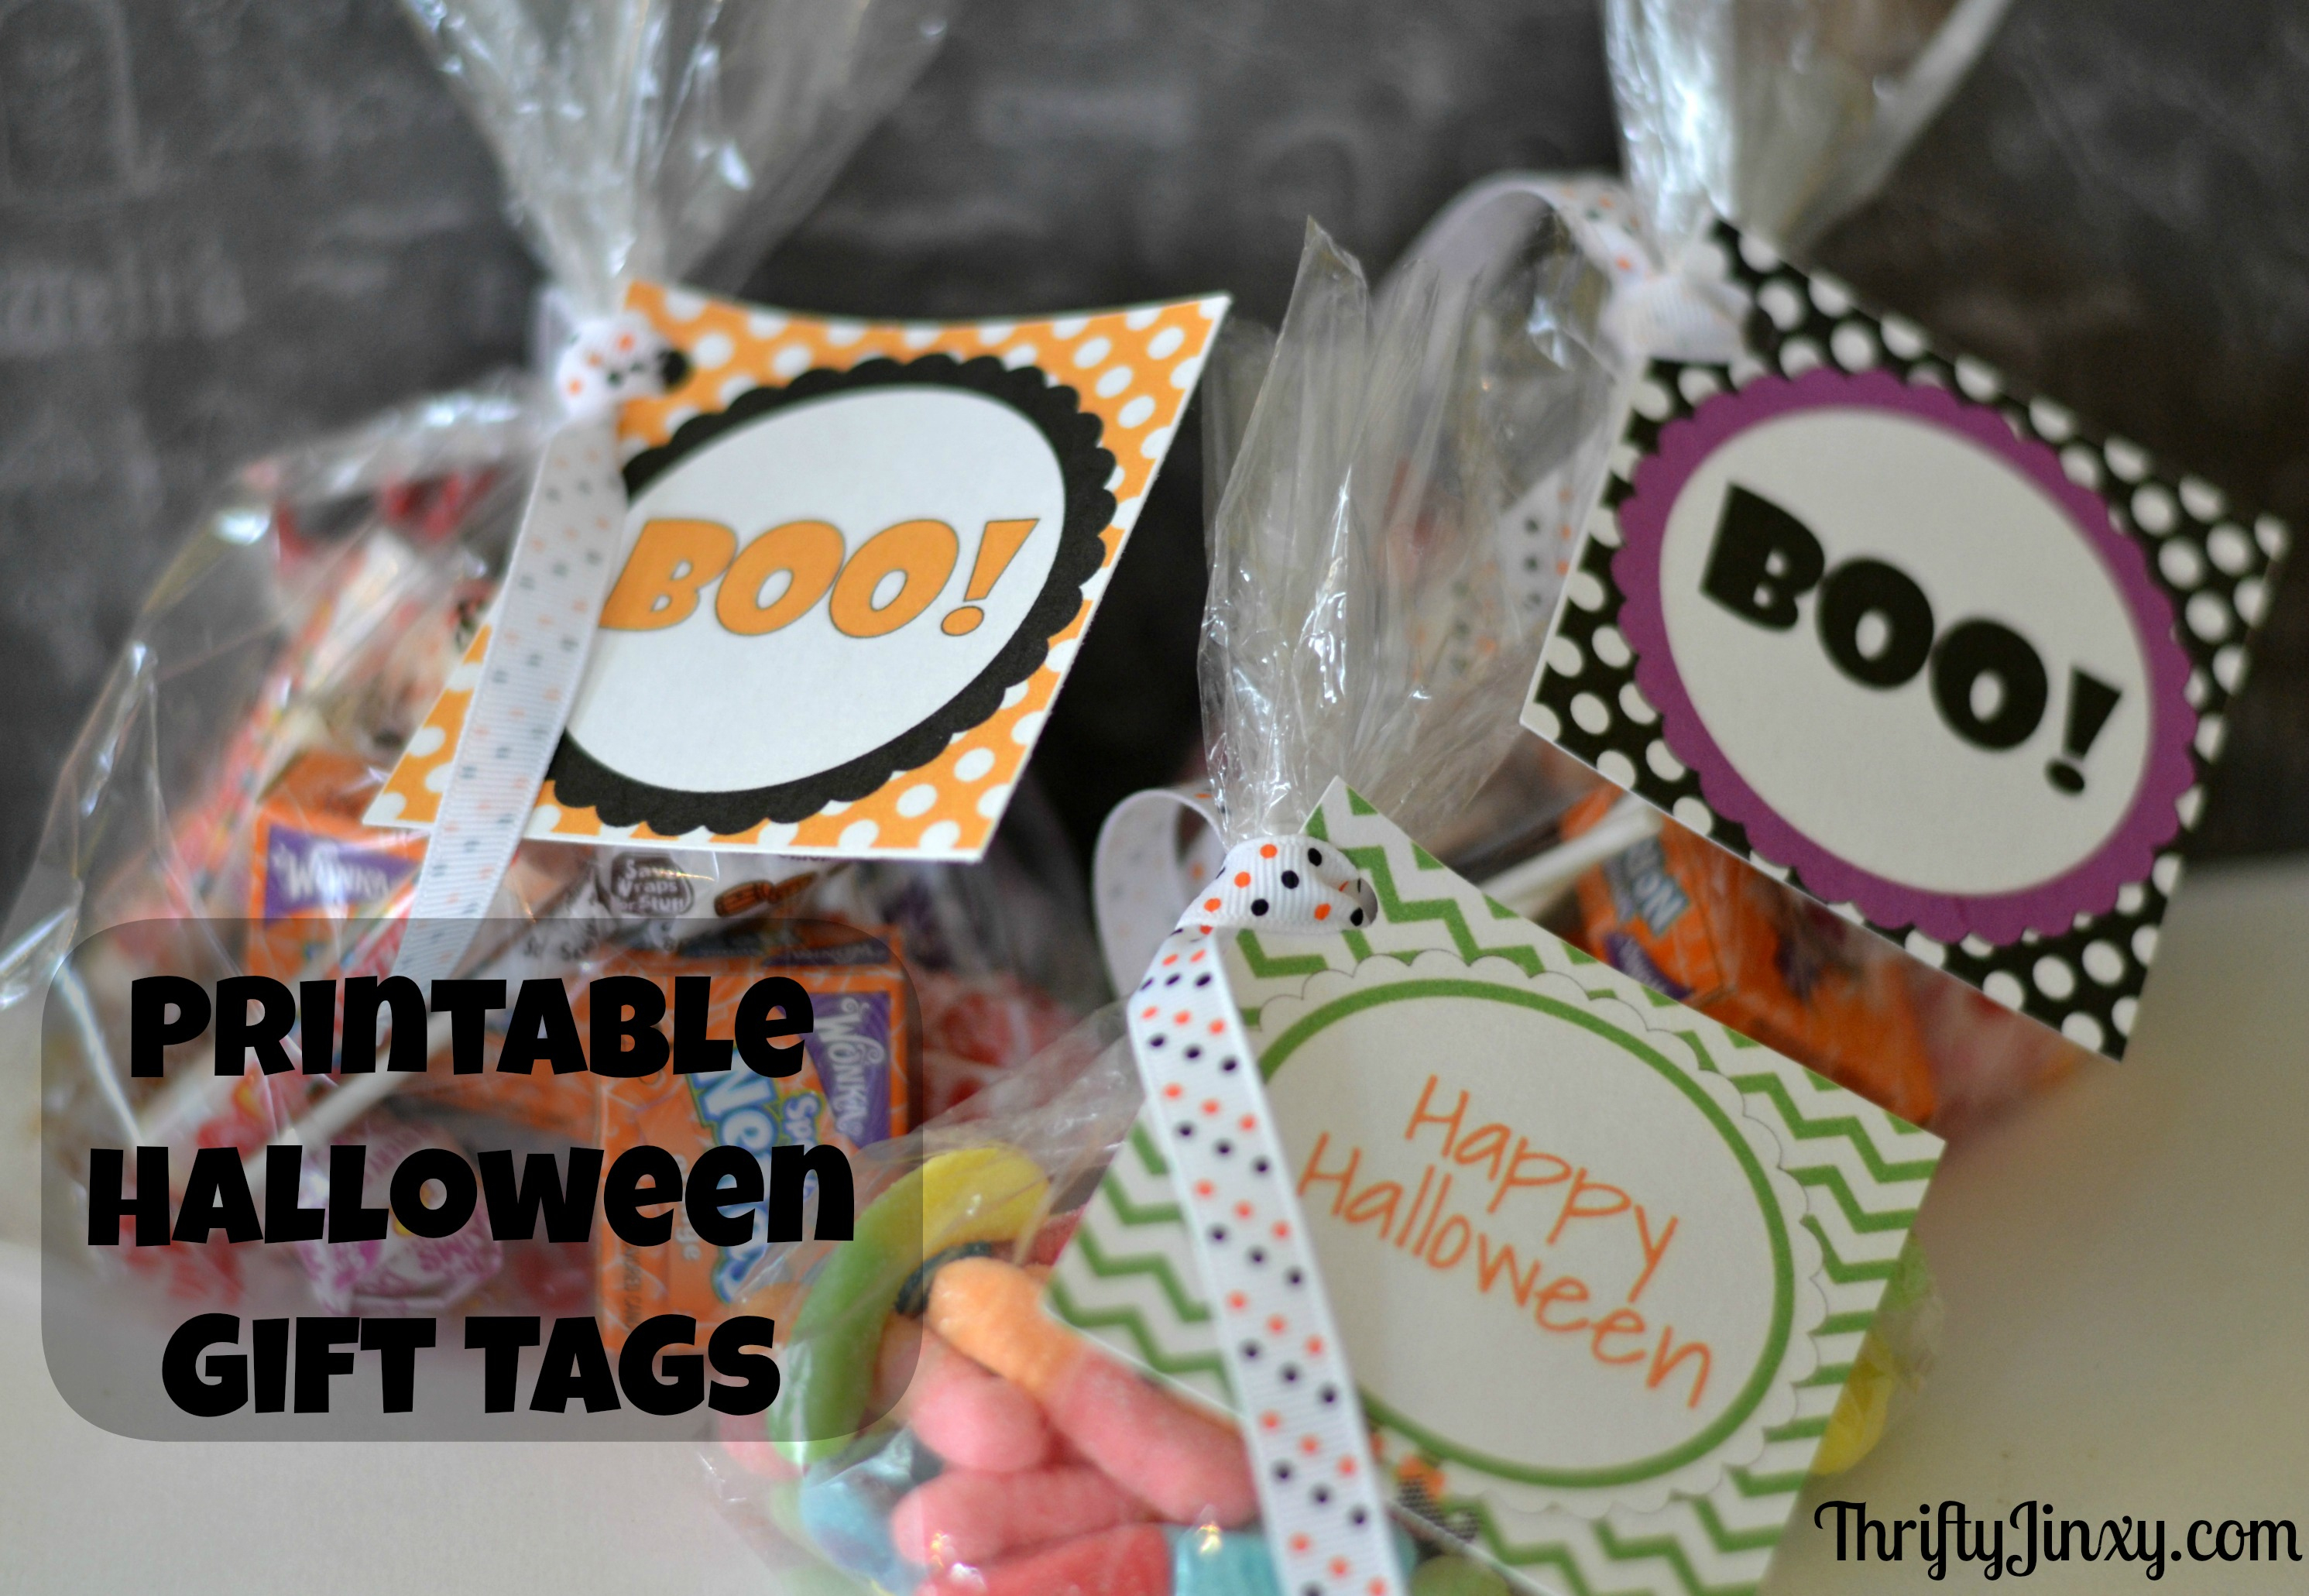 Free Printable Halloween Gift Tags And Treat Bag Tags - Thrifty Jinxy - Free Printable Goodie Bag Tags